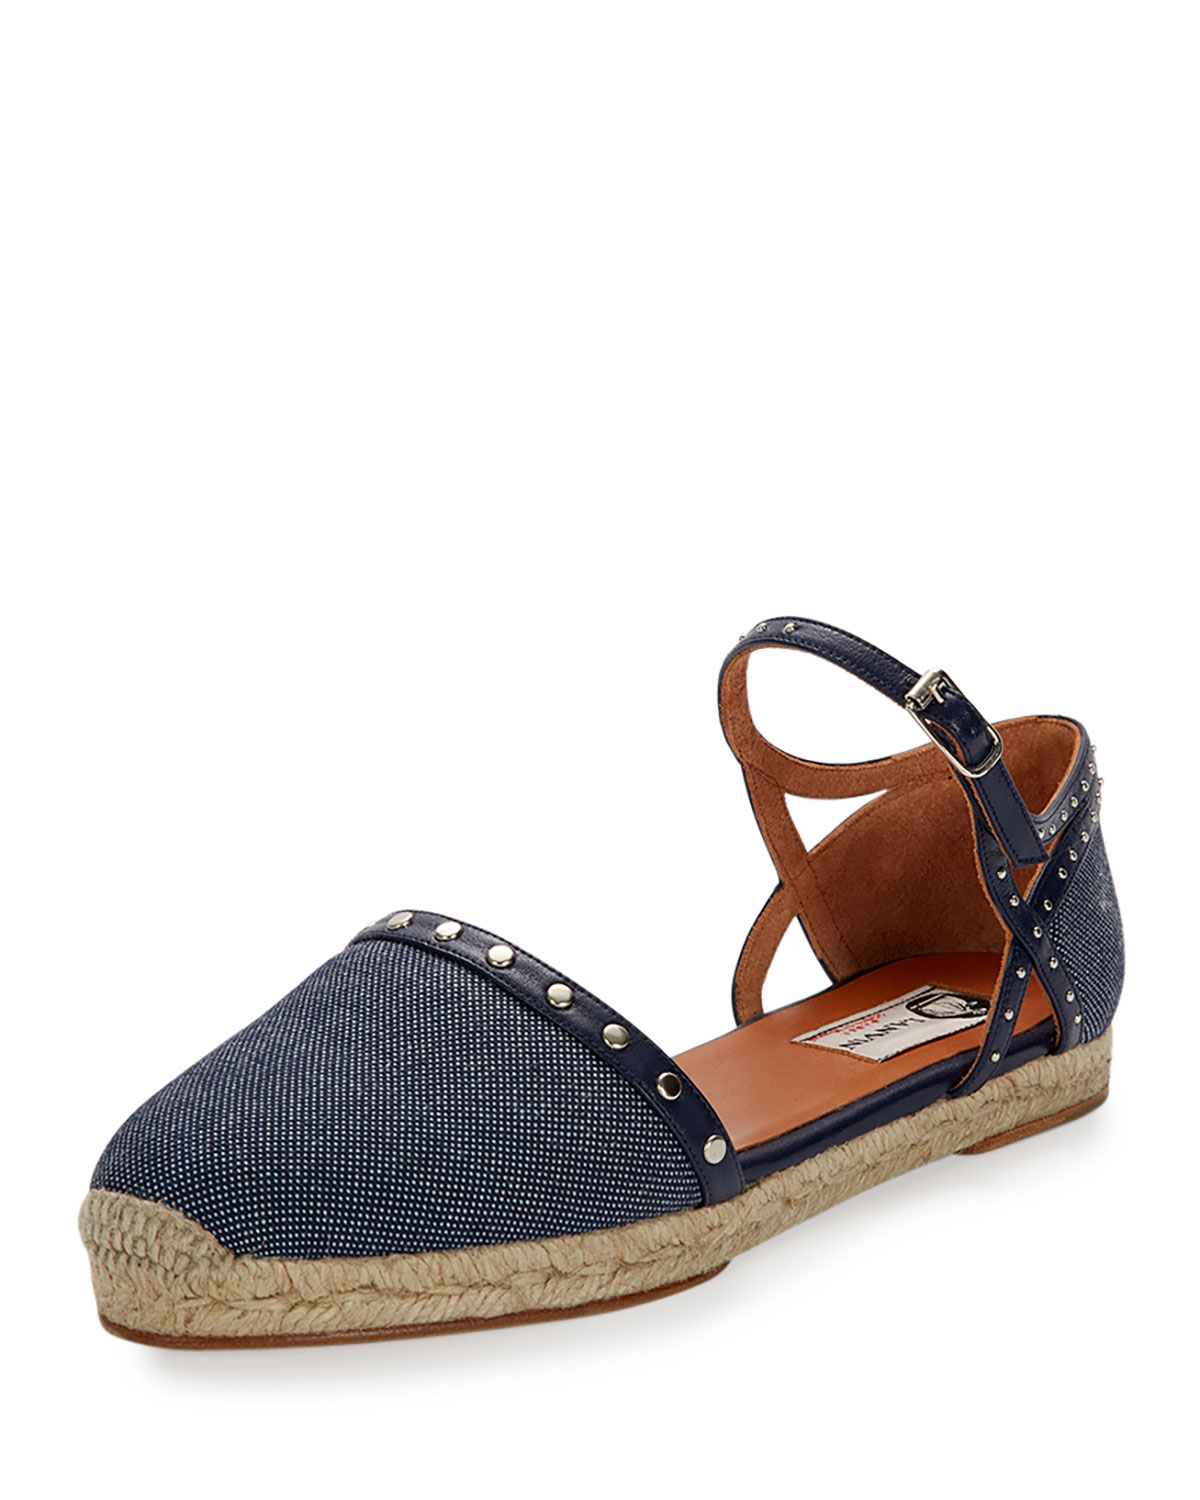 clearance manchester great sale LANVIN Espadrilles cheap real eastbay looking for sale online waSwPM